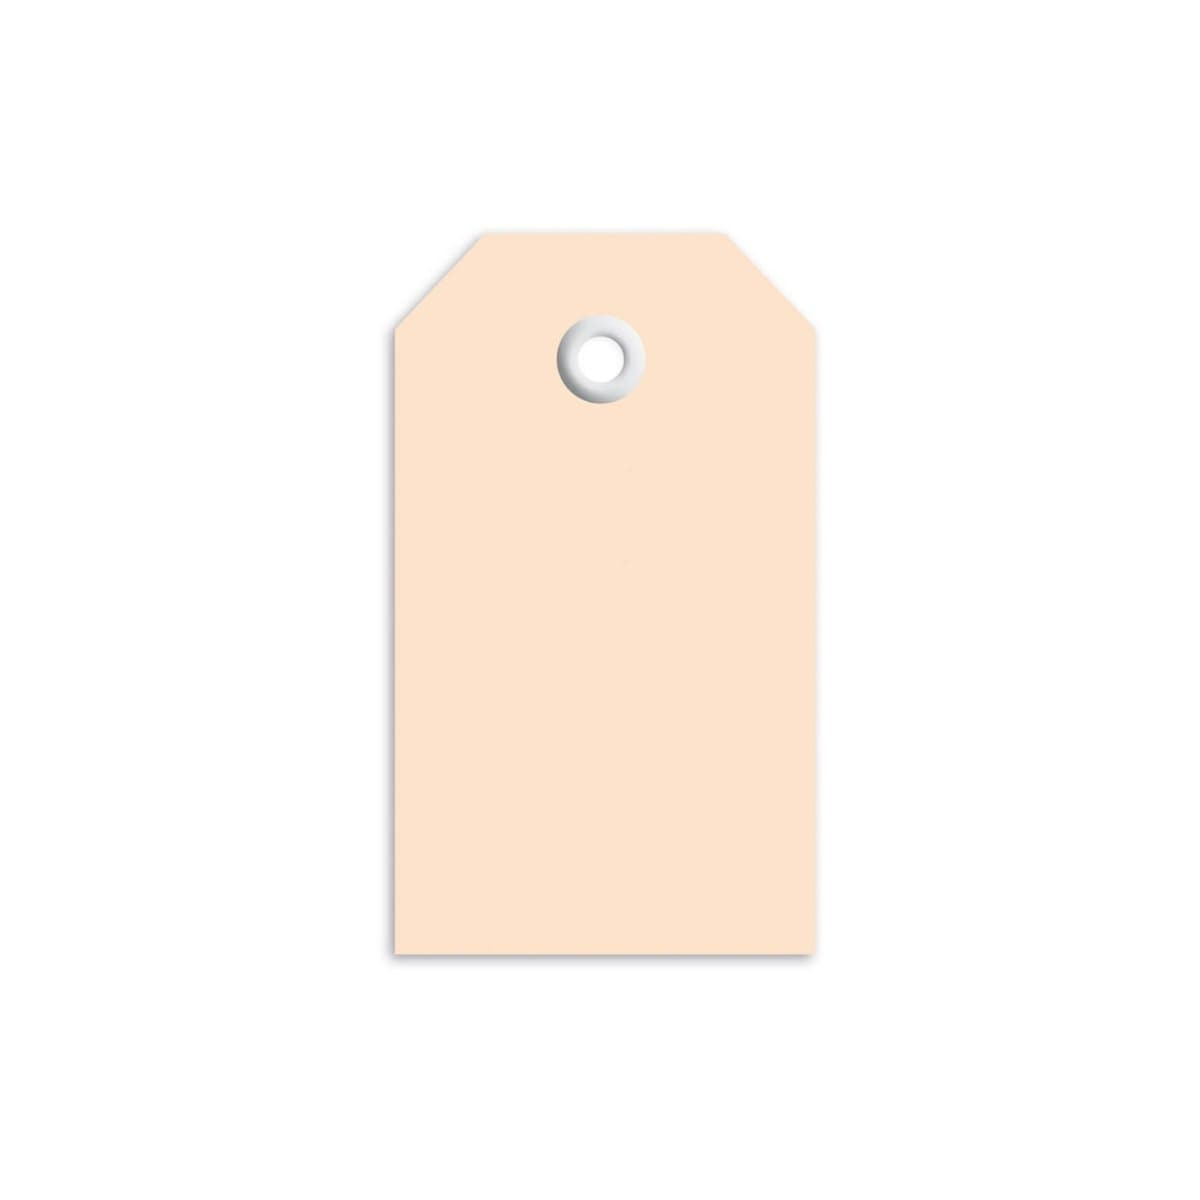 Herma Merchandise Tags with plastic eyelet, 35 x 60 mm, Brown